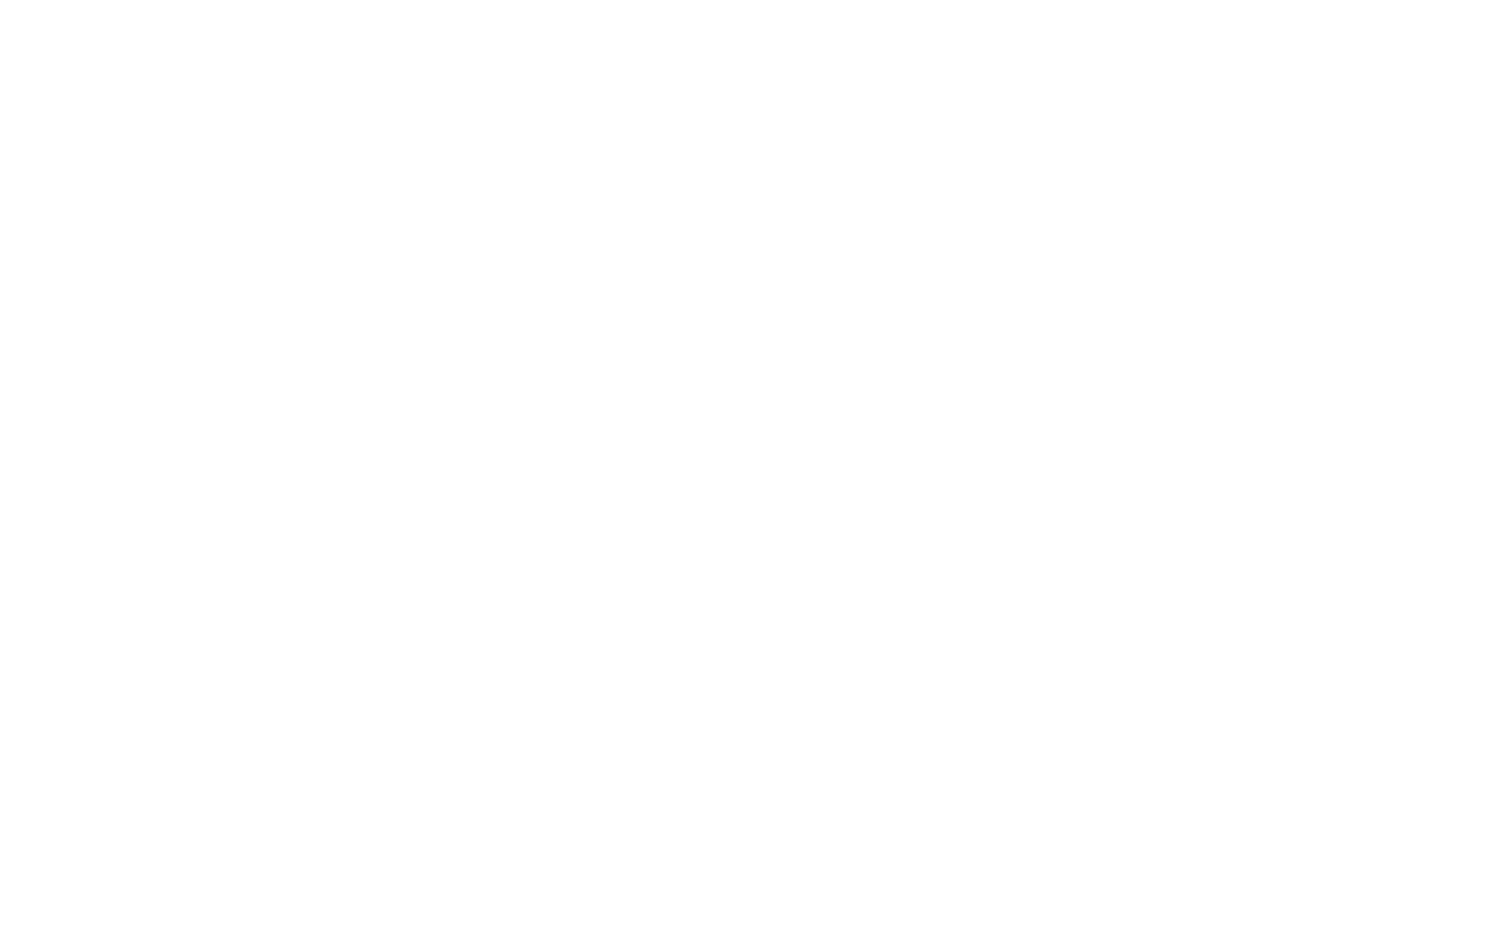 Scooter Accounting